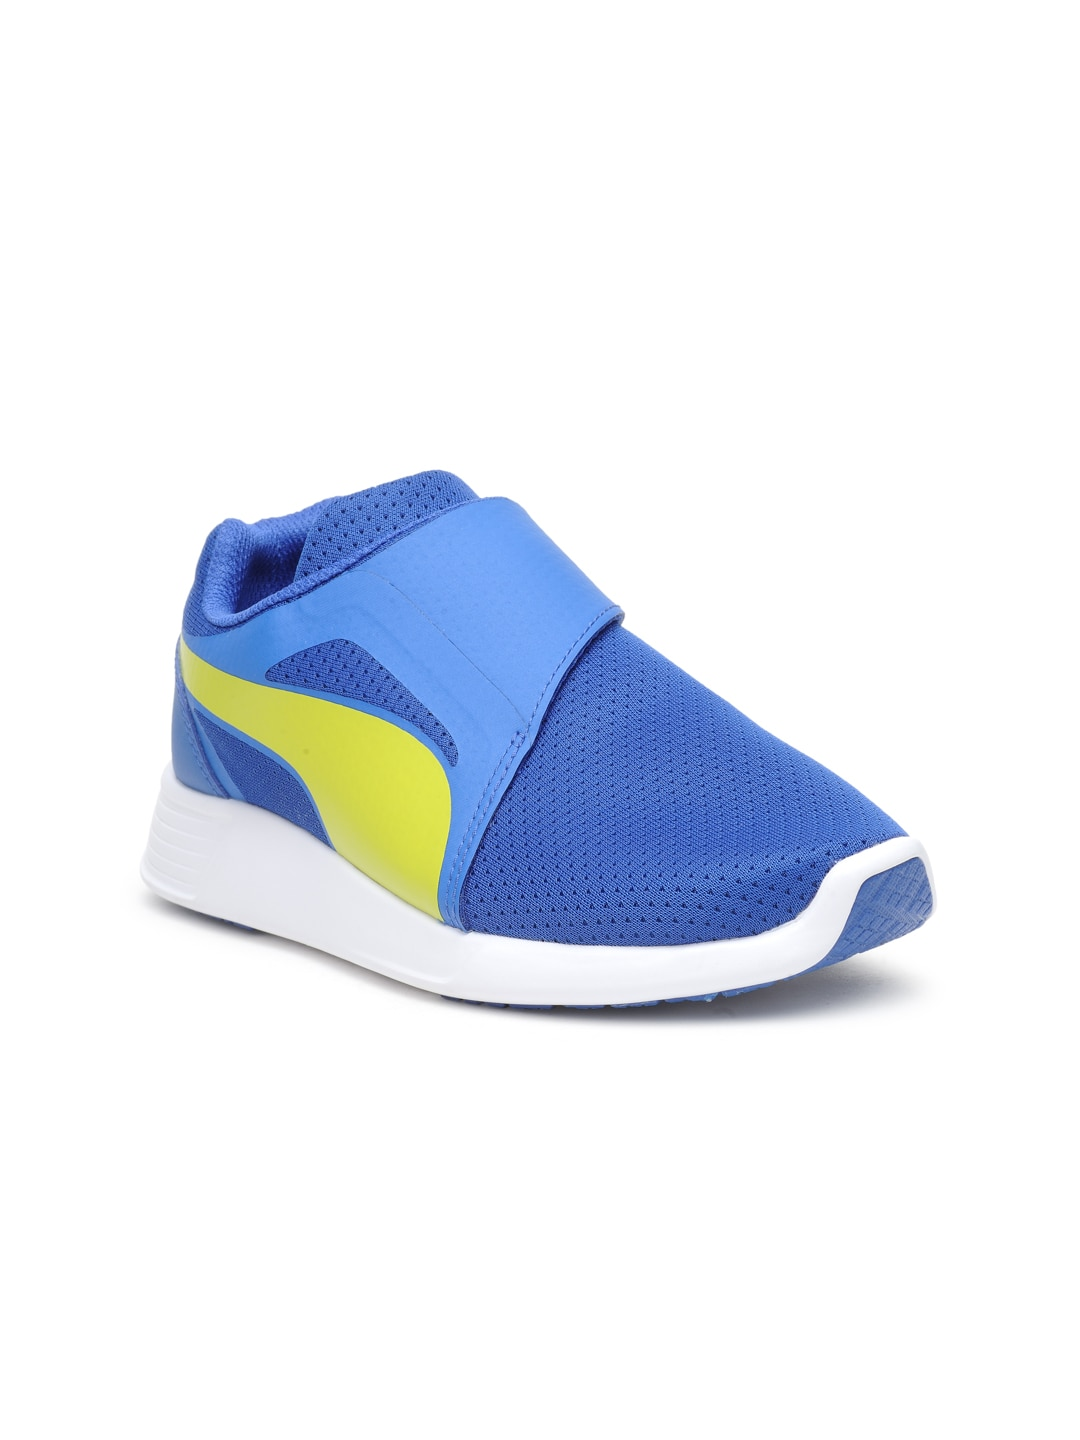 ed21e0e096 Kids Shoes - Buy Shoes for Kids Online in India